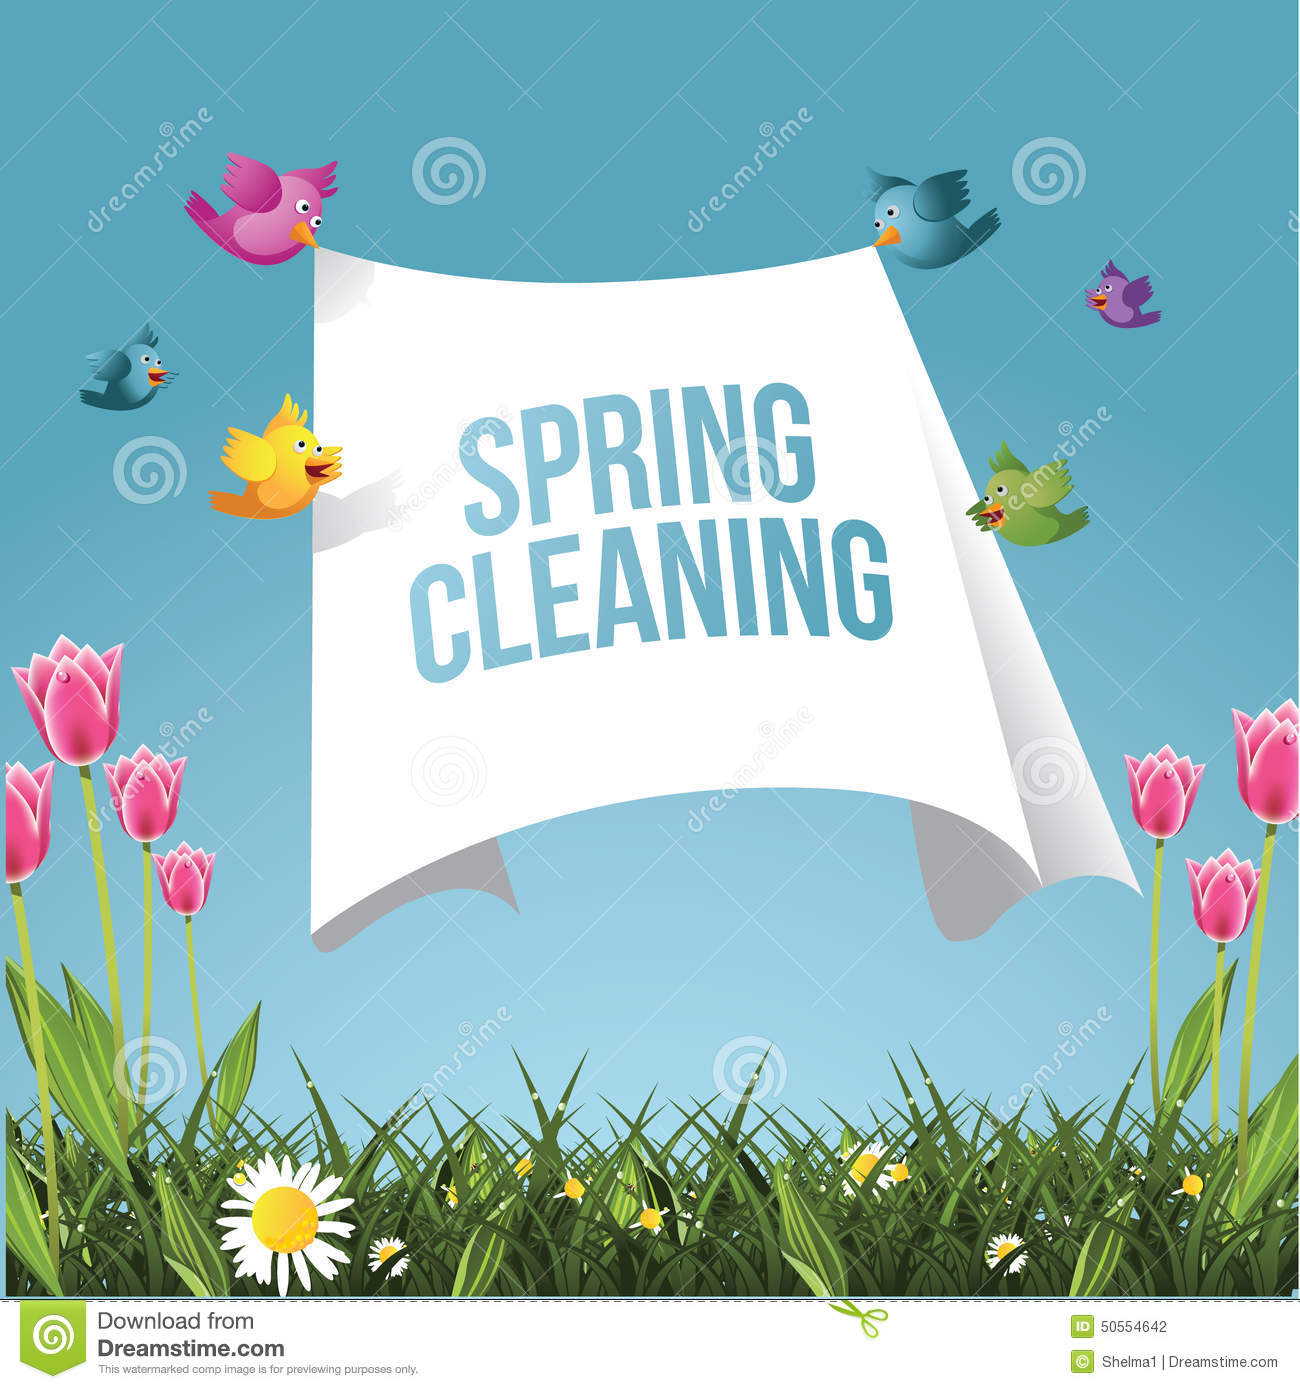 Spring Cleaning Ad